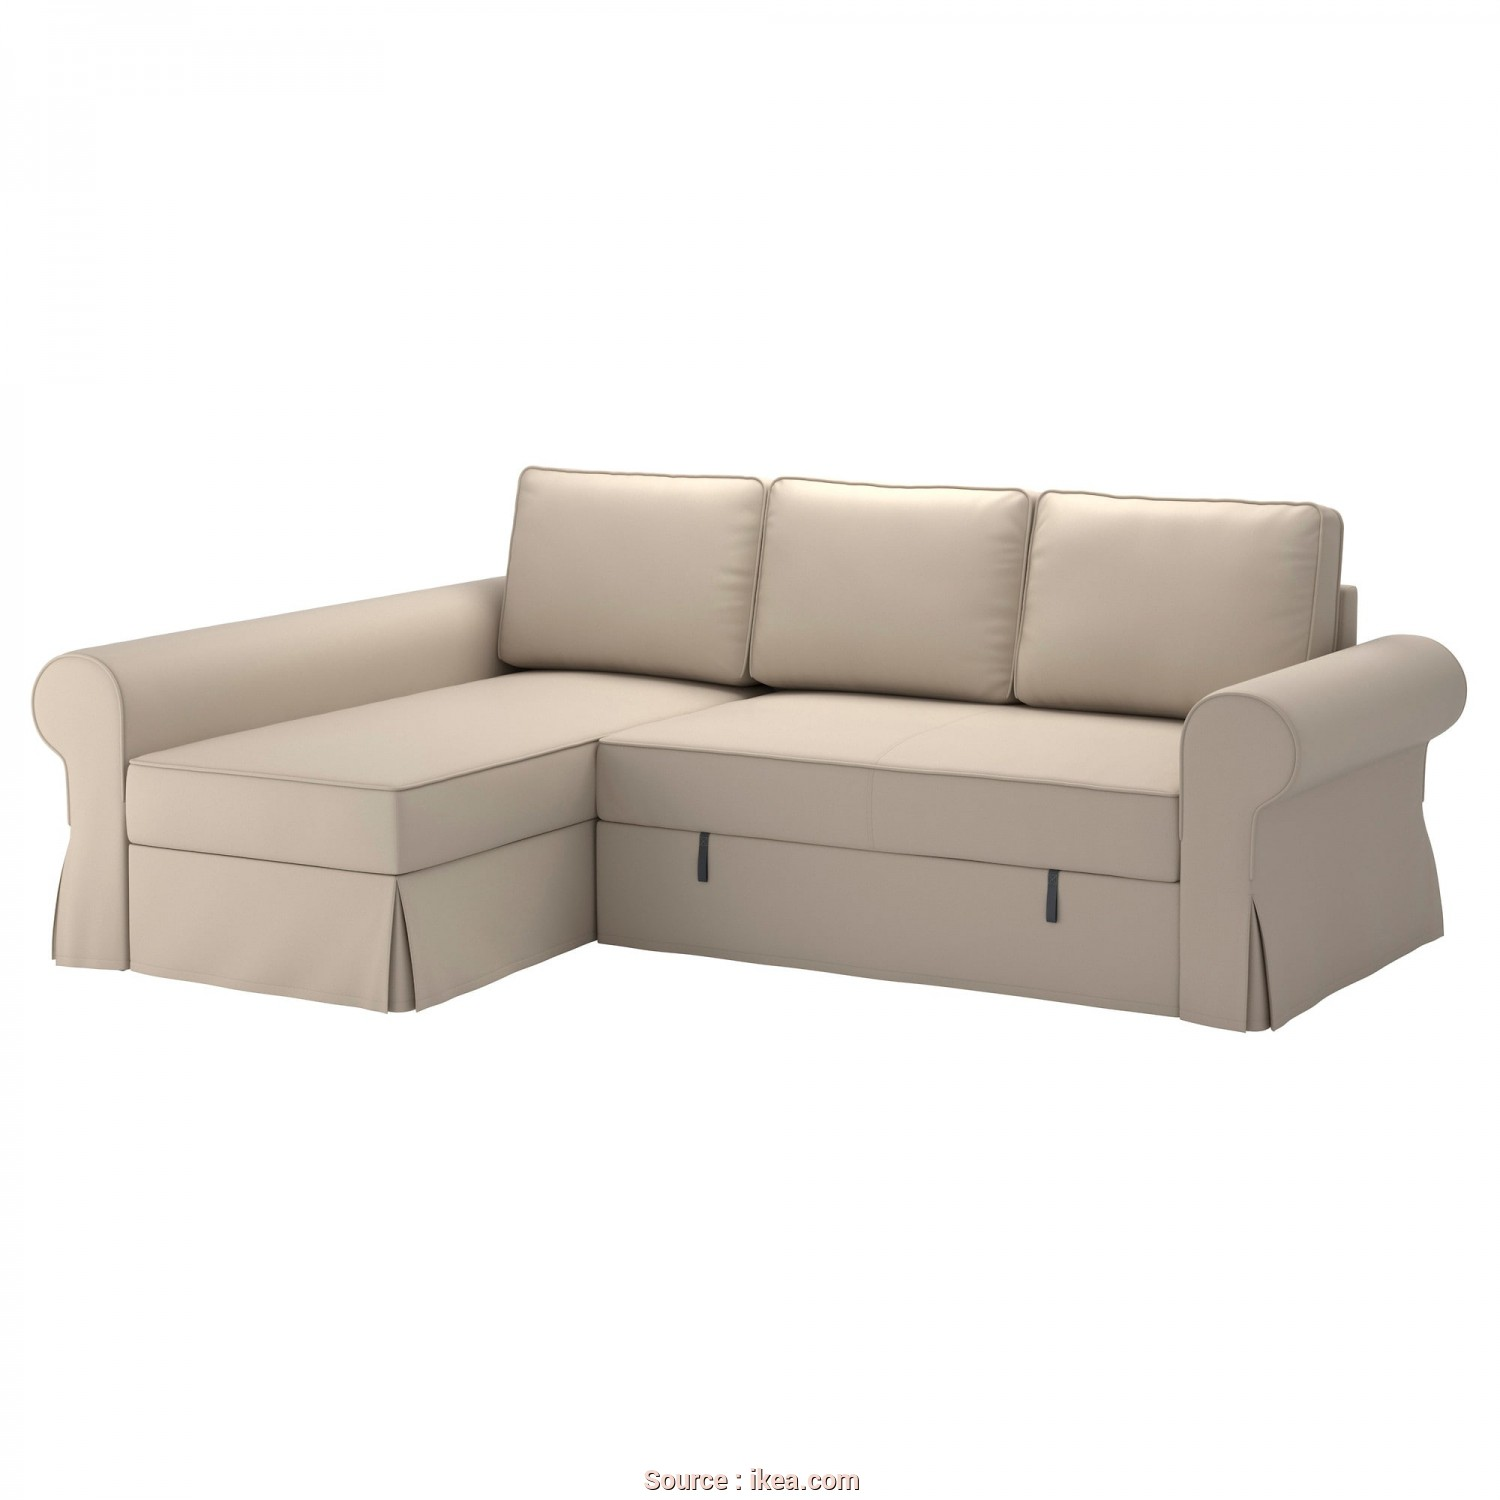 Ikea Kanapa Backabro, Esotico IKEA BACKABRO Sofa, With Chaise Longue Readily Converts Into A Bed